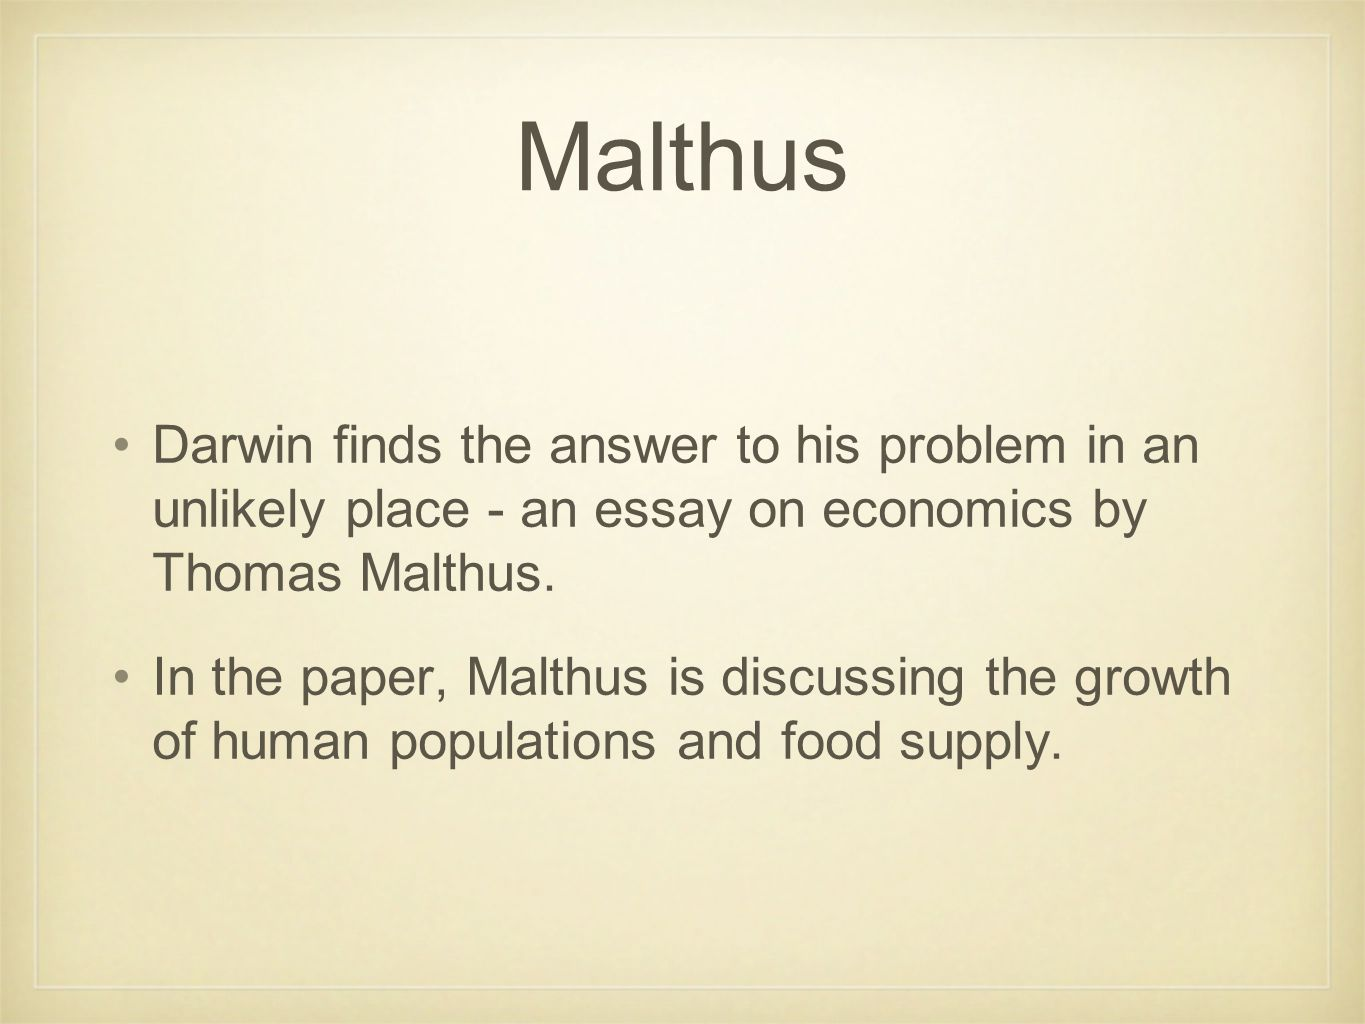 Malthus Darwin finds the answer to his problem in an unlikely place - an essay on economics by Thomas Malthus.